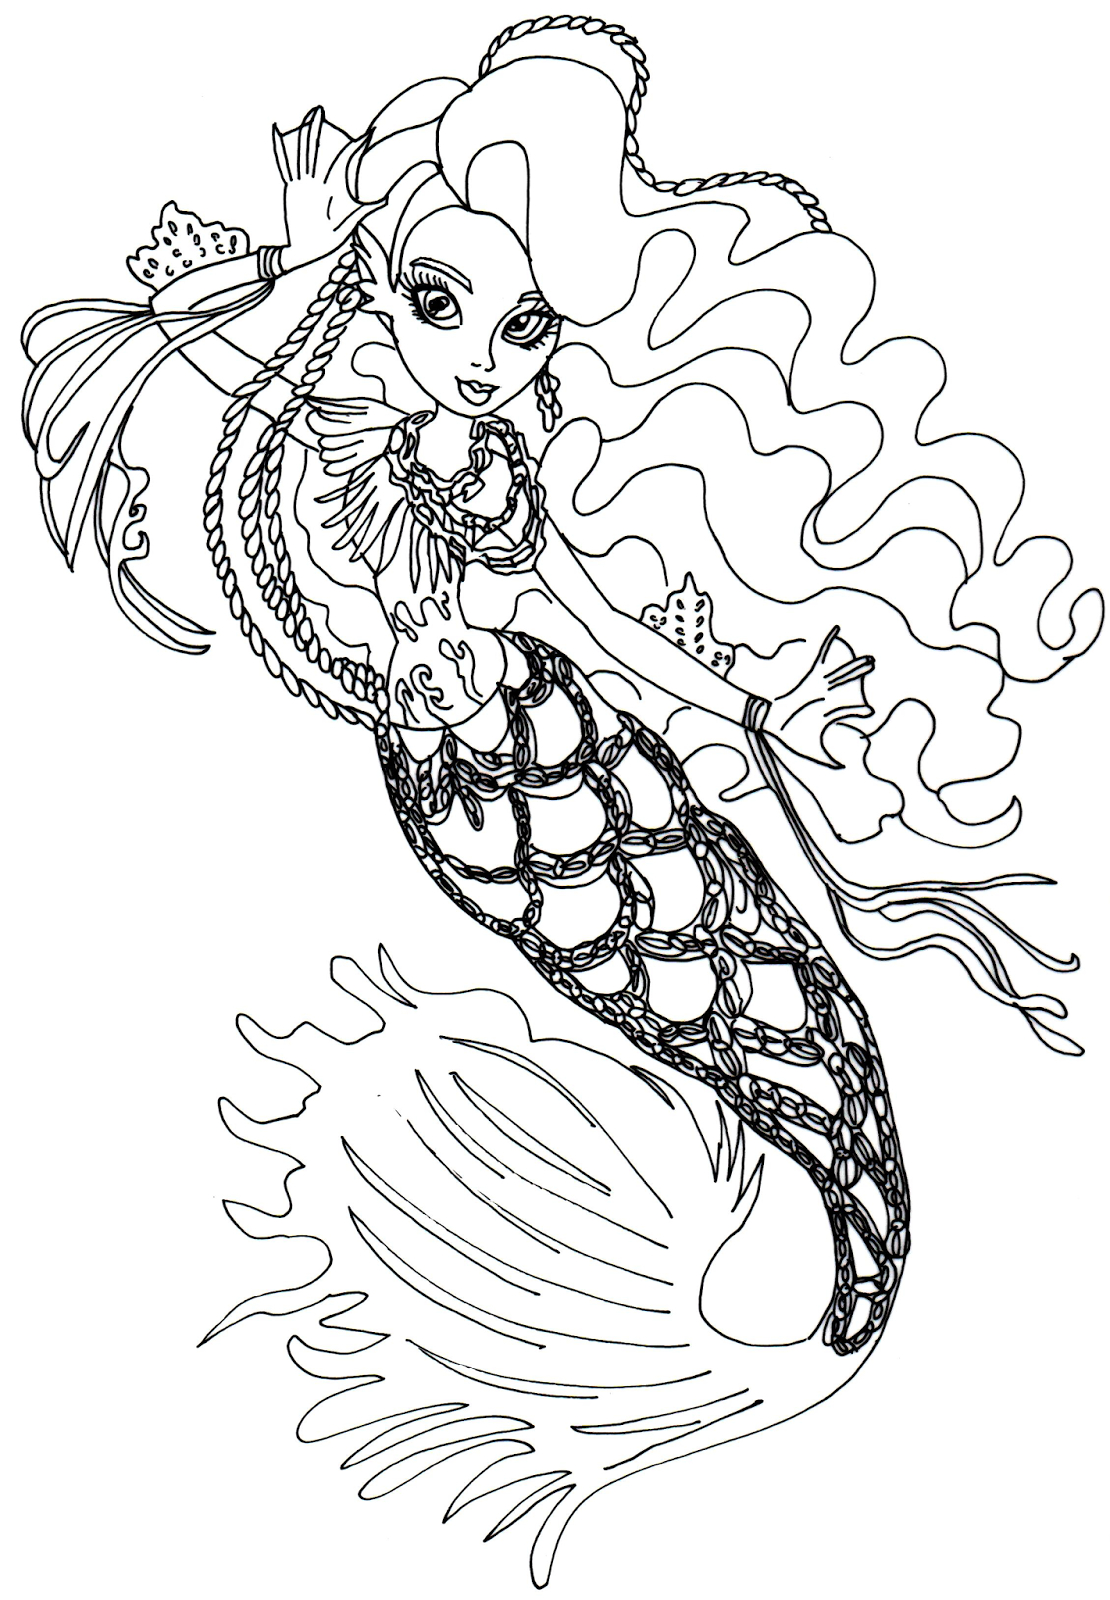 Monster High Coloring Pages Monster High Coloring Page All Collection Of Wydowna Spider by Elfkena On Deviantart to Print